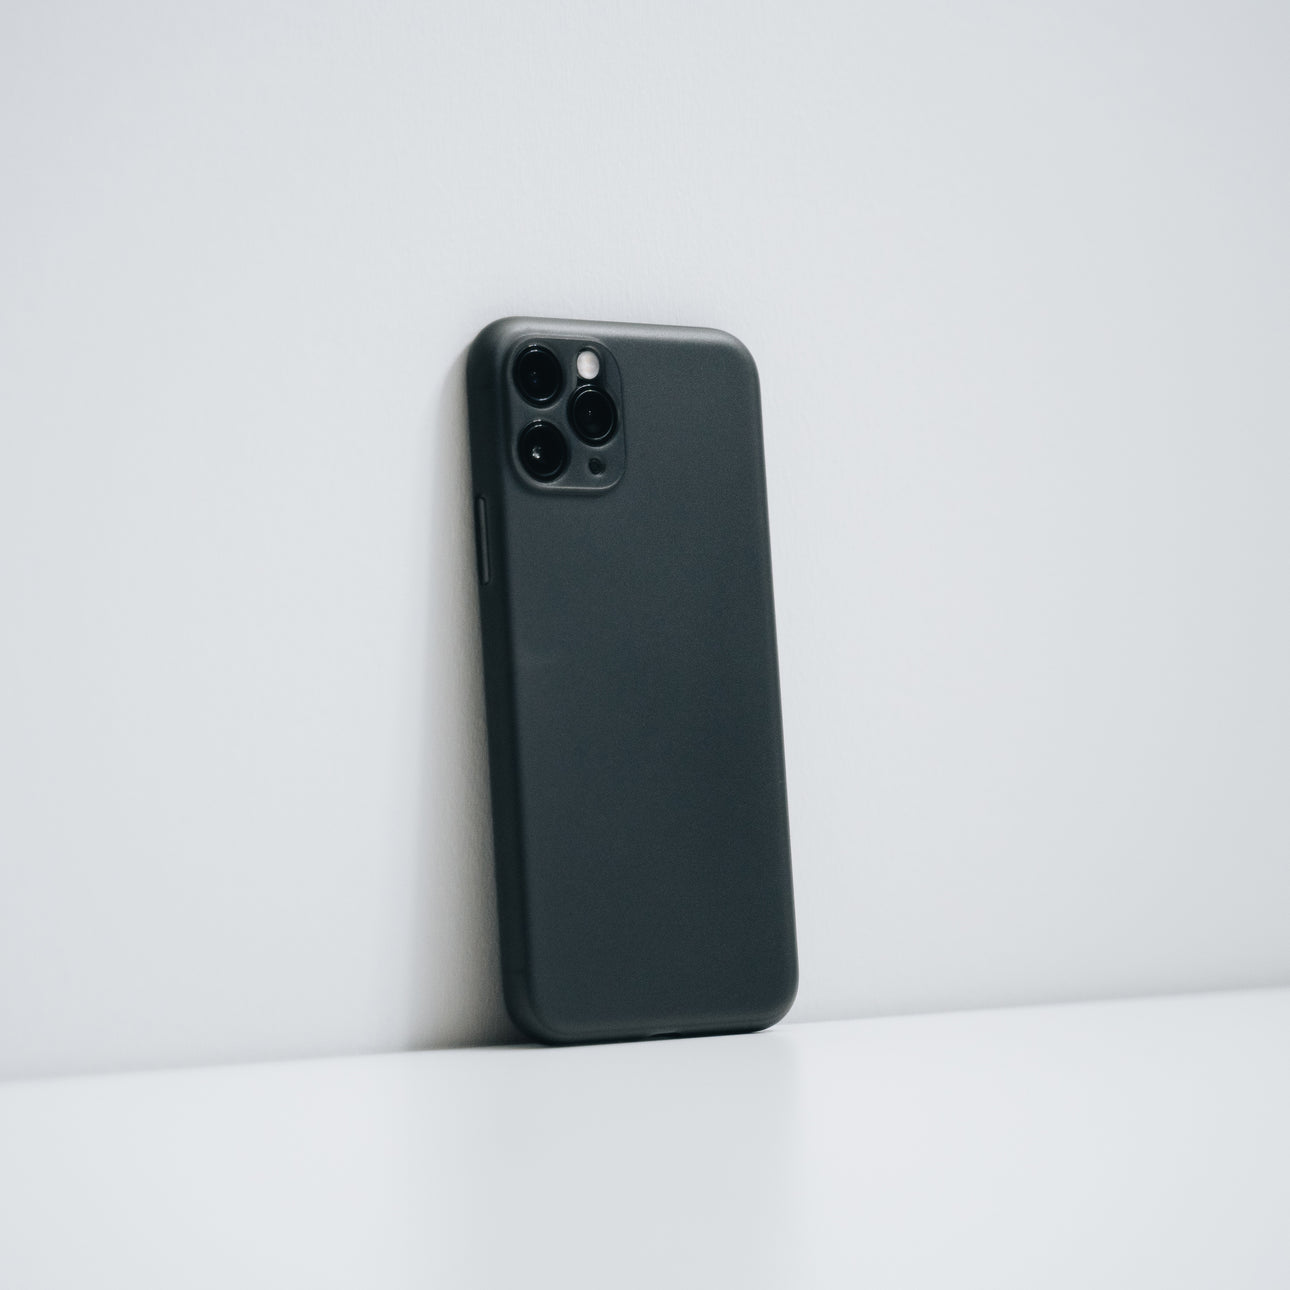 Super Thin iPhone Case for iPhone 11 Pro & Pro Max